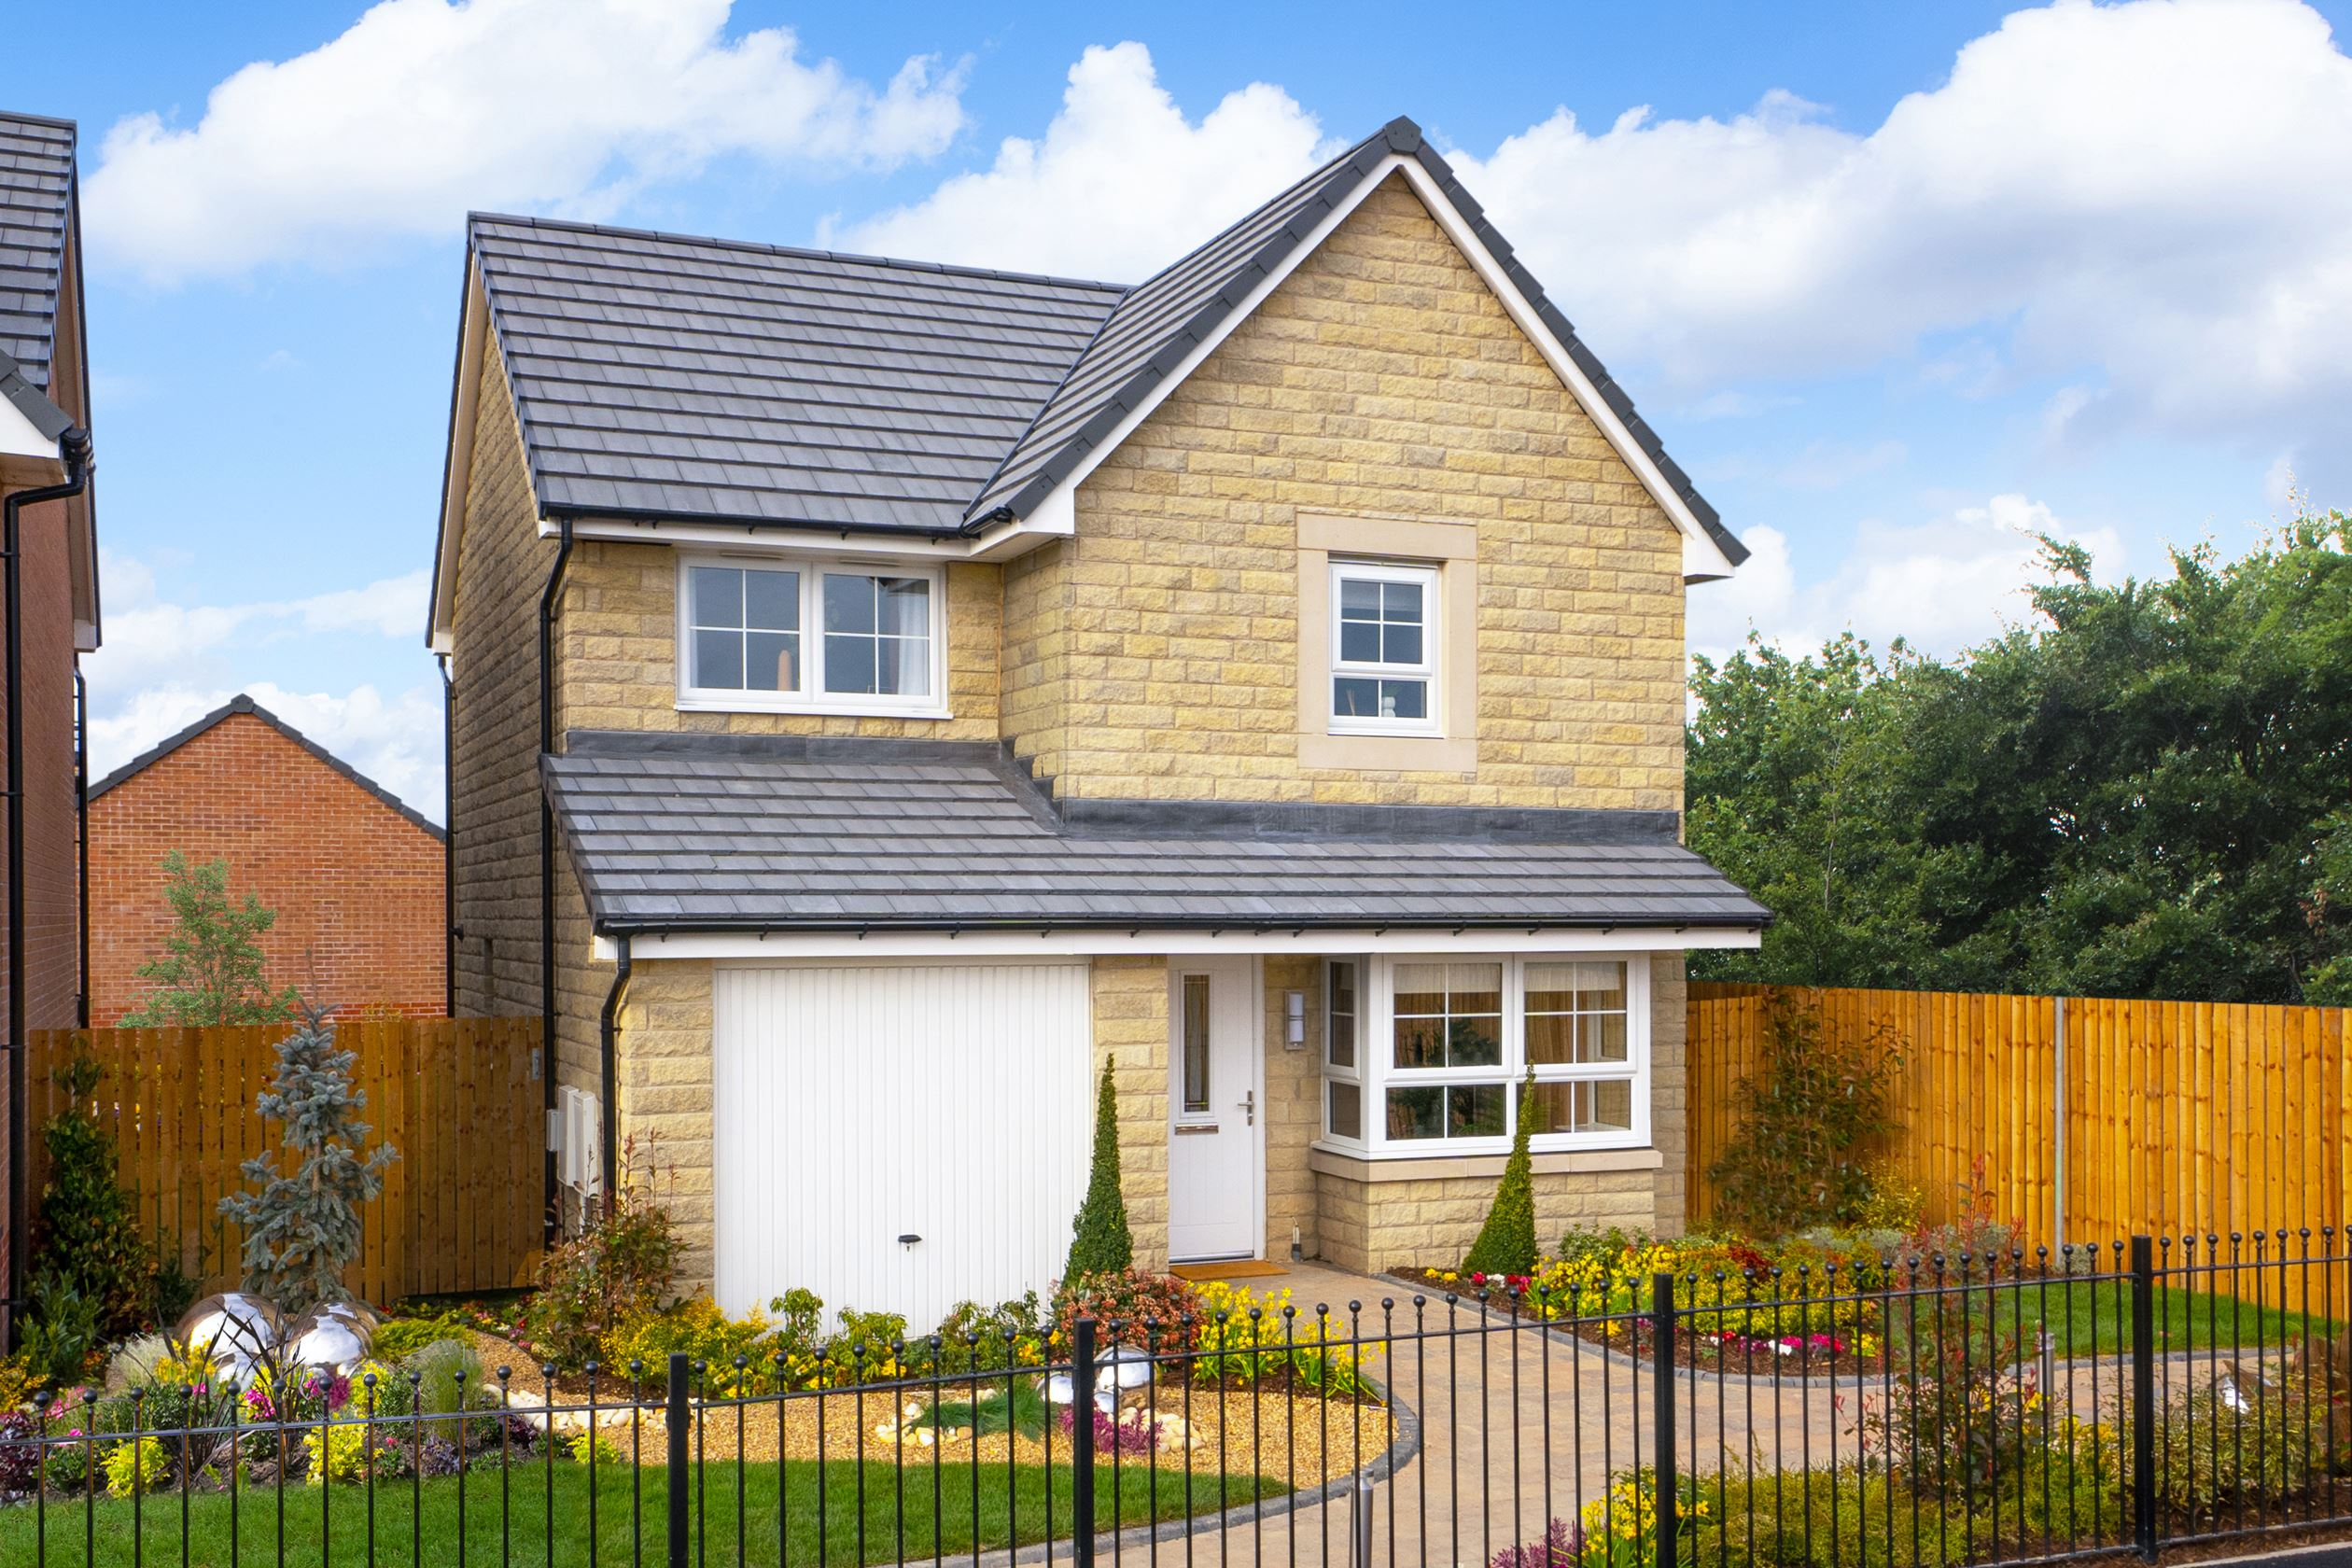 The Derwent show home at Ambler's Meadow